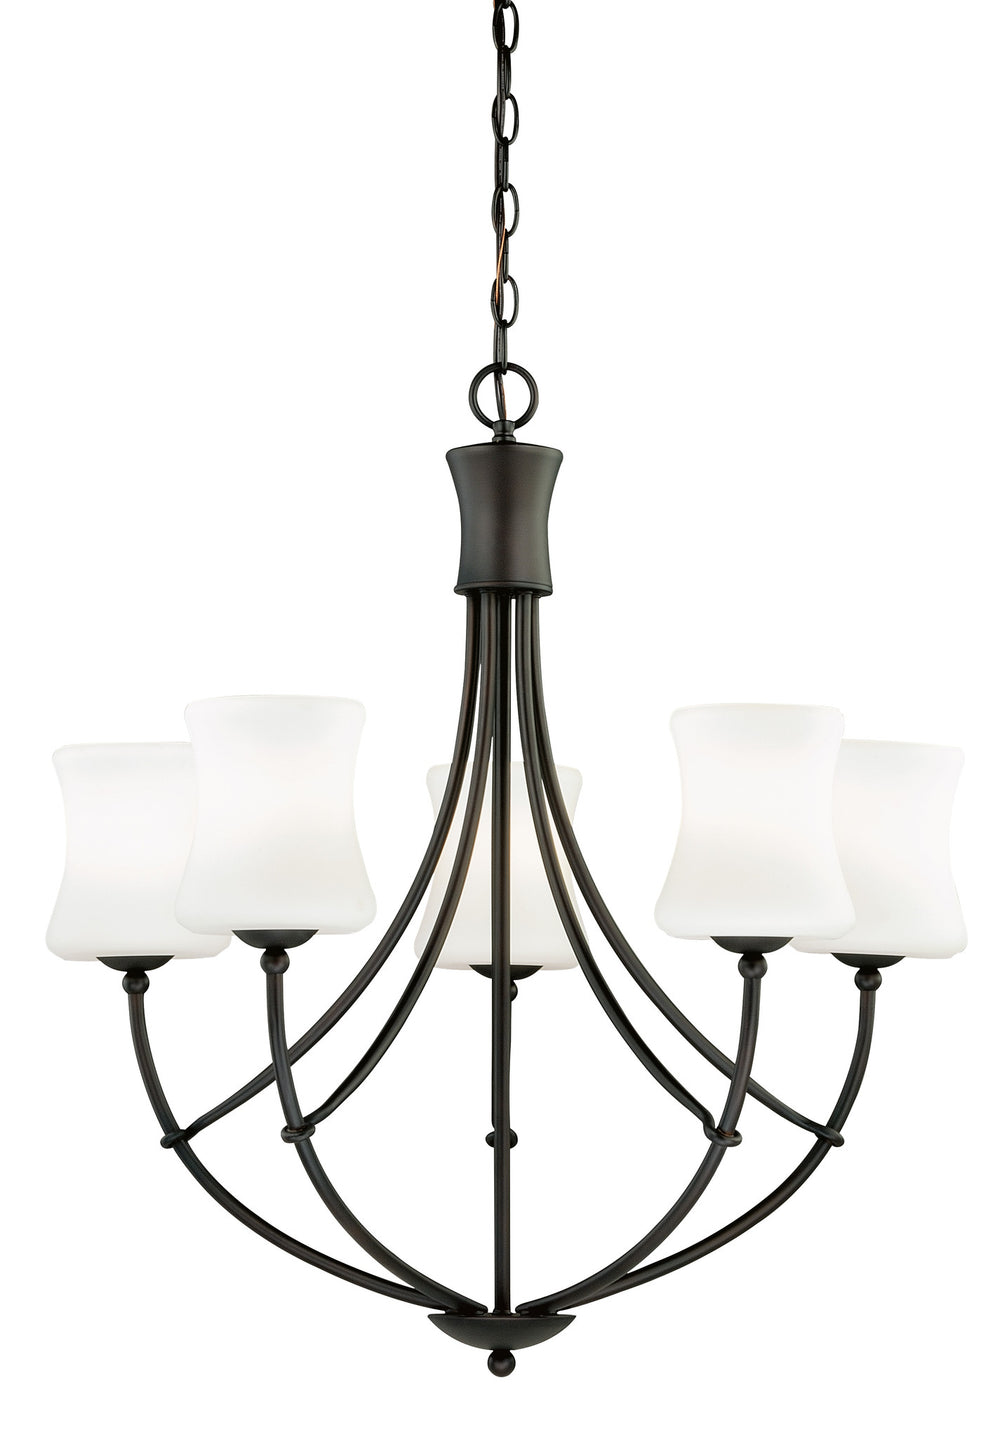 Buy H0105 Vaxcel Poirot 5L Chandelier New Bronze from LightingOriginals.ca